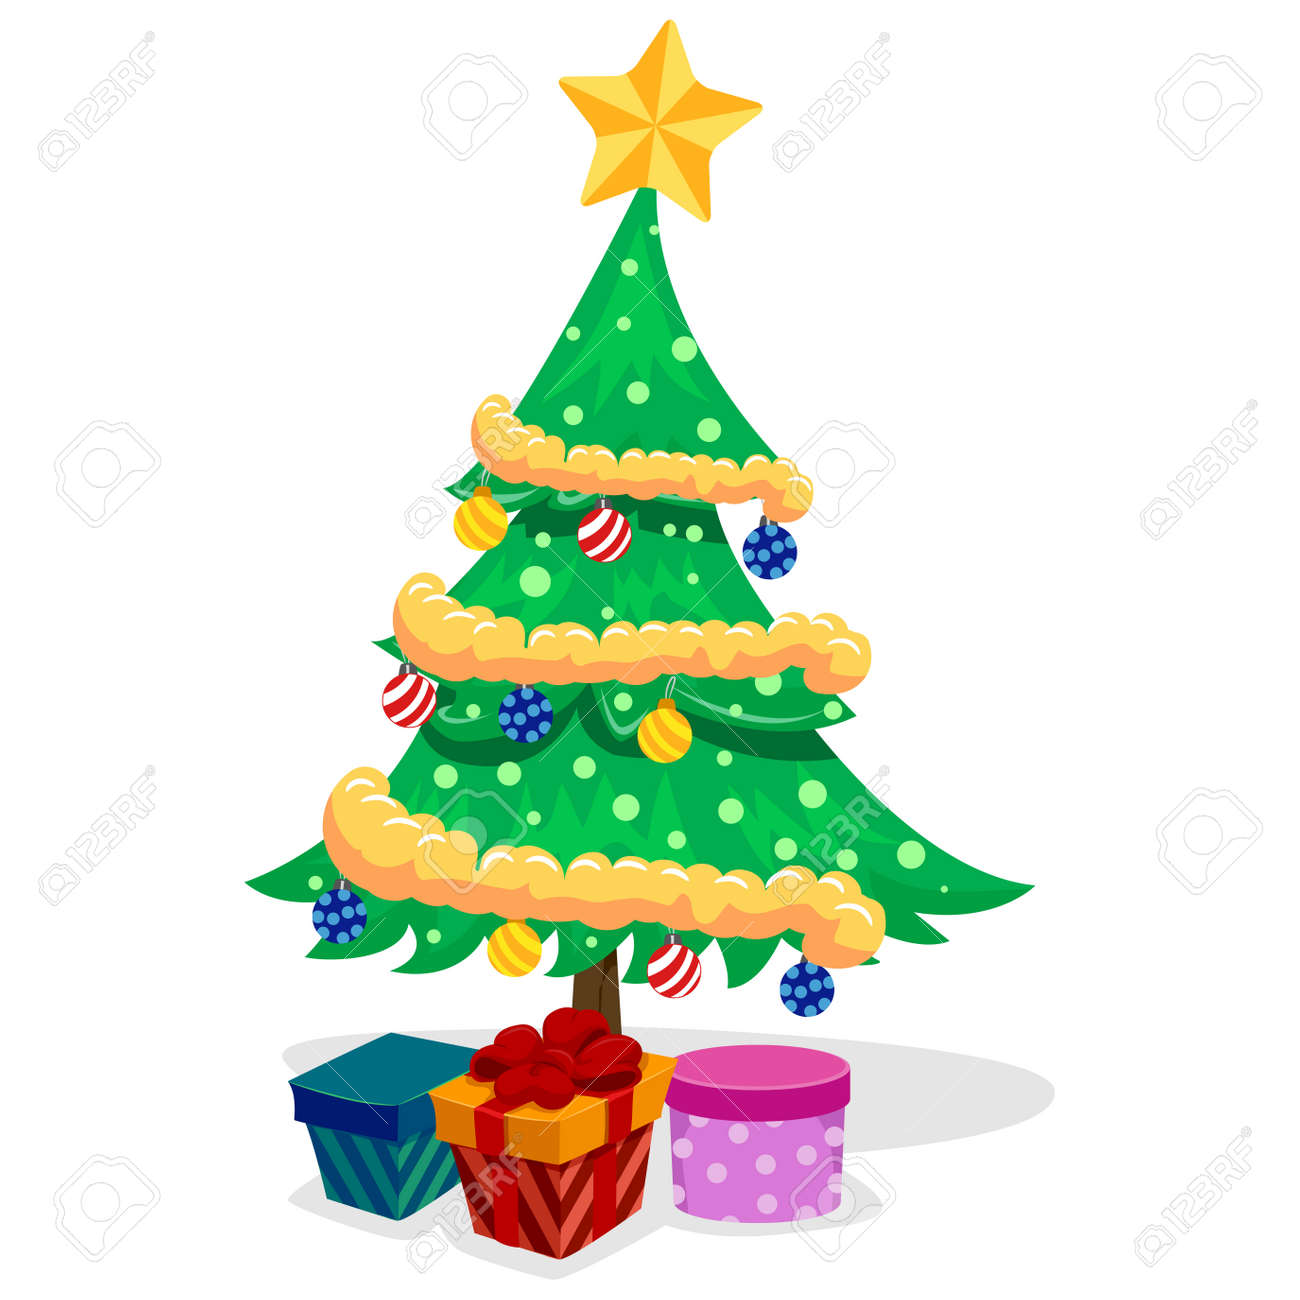 Vector Illustration Of Christmas Tree With Presents Royalty Free